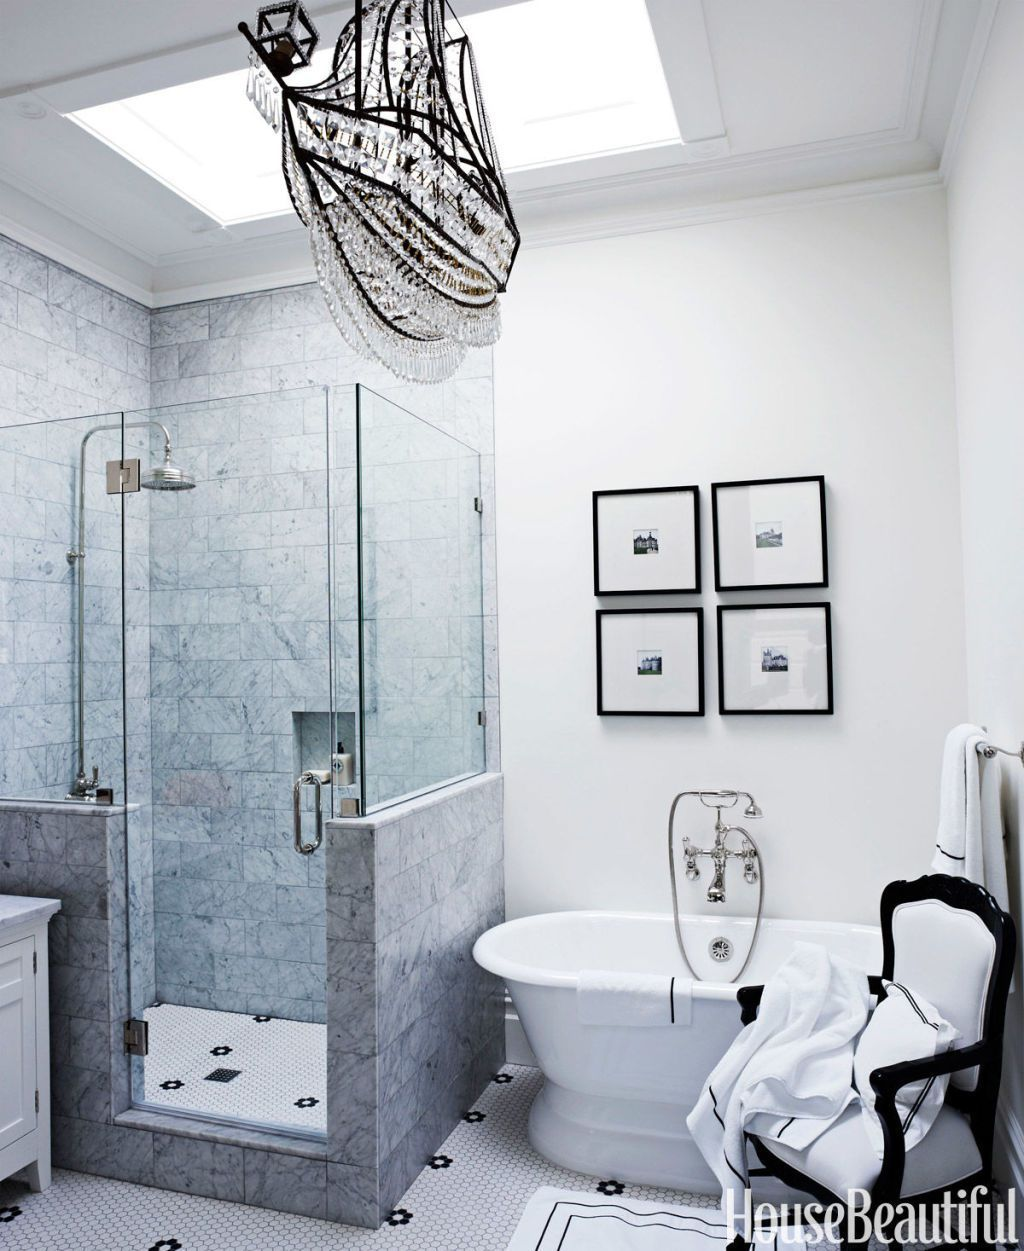 15 Black and White Bathroom Ideas - Black & White Tile Designs We Love